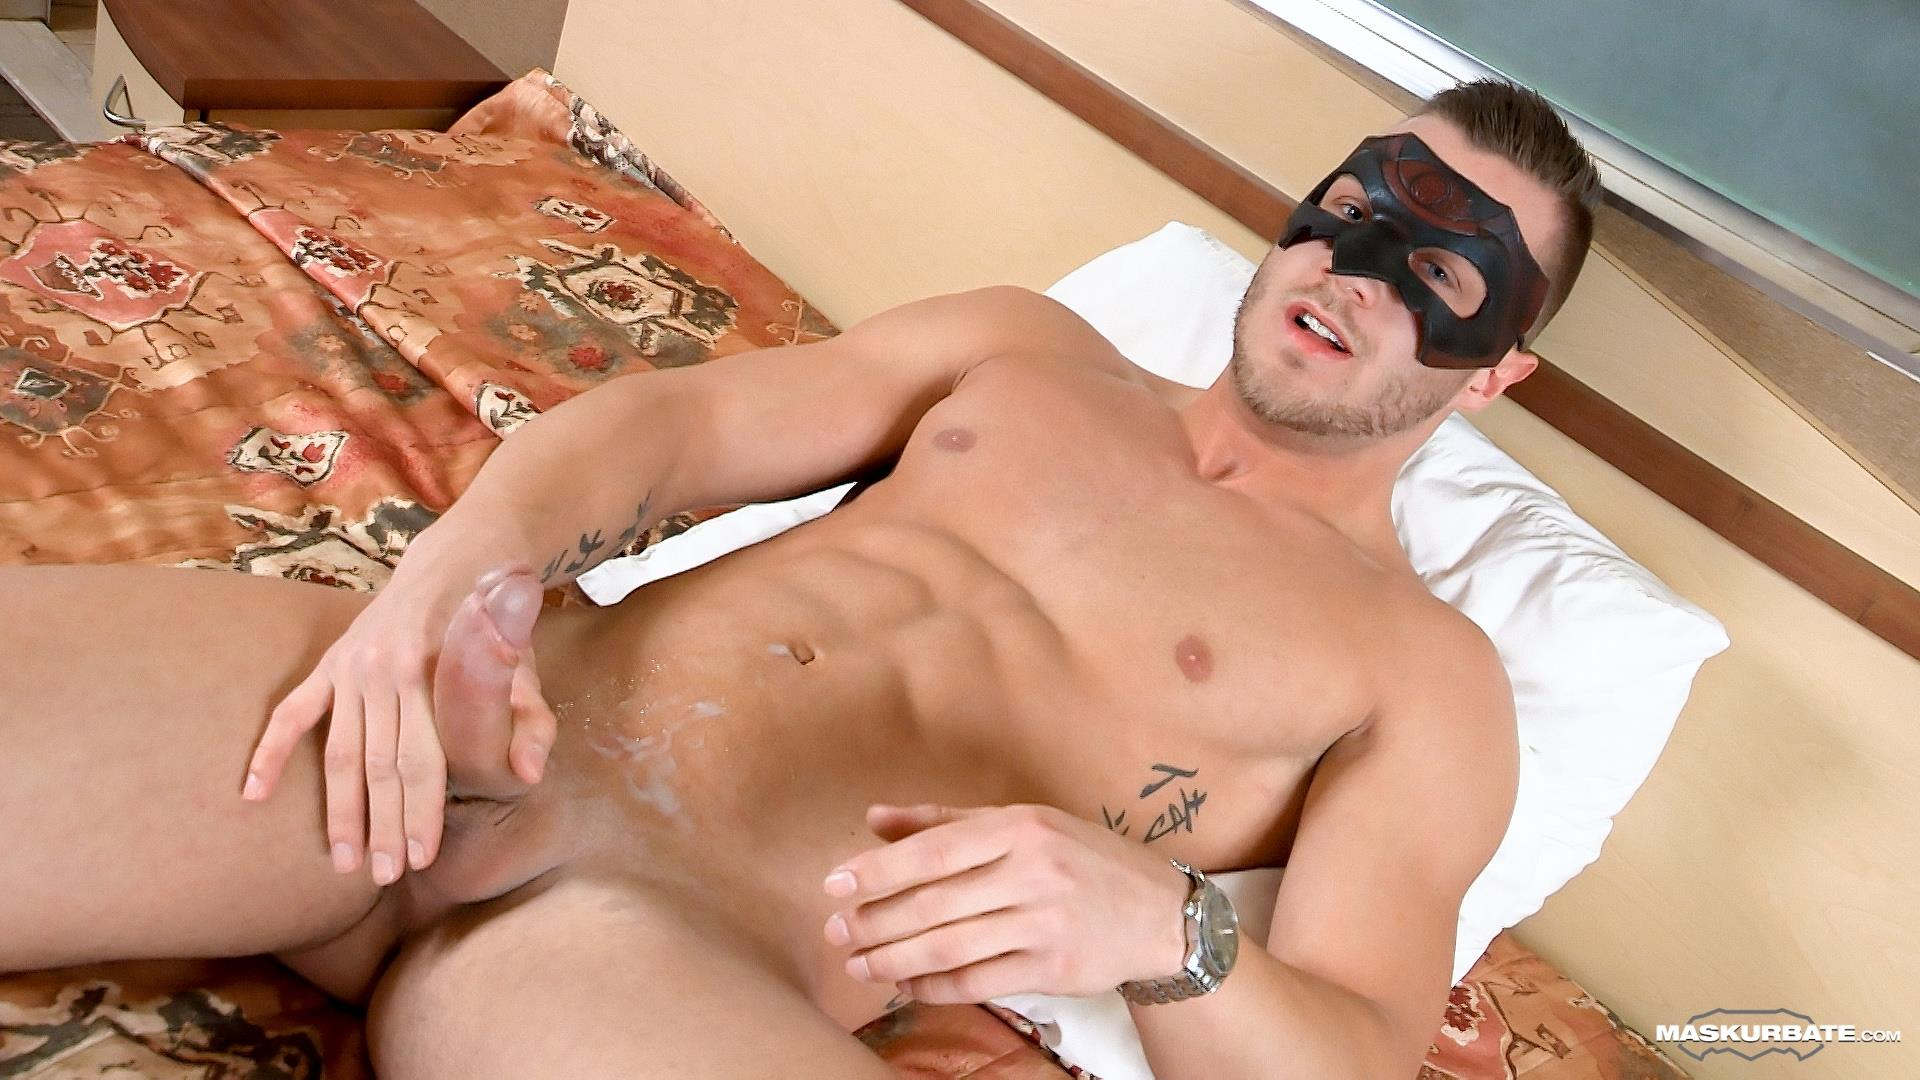 Bisexual Pornstar Hunk Jerks Himself Off